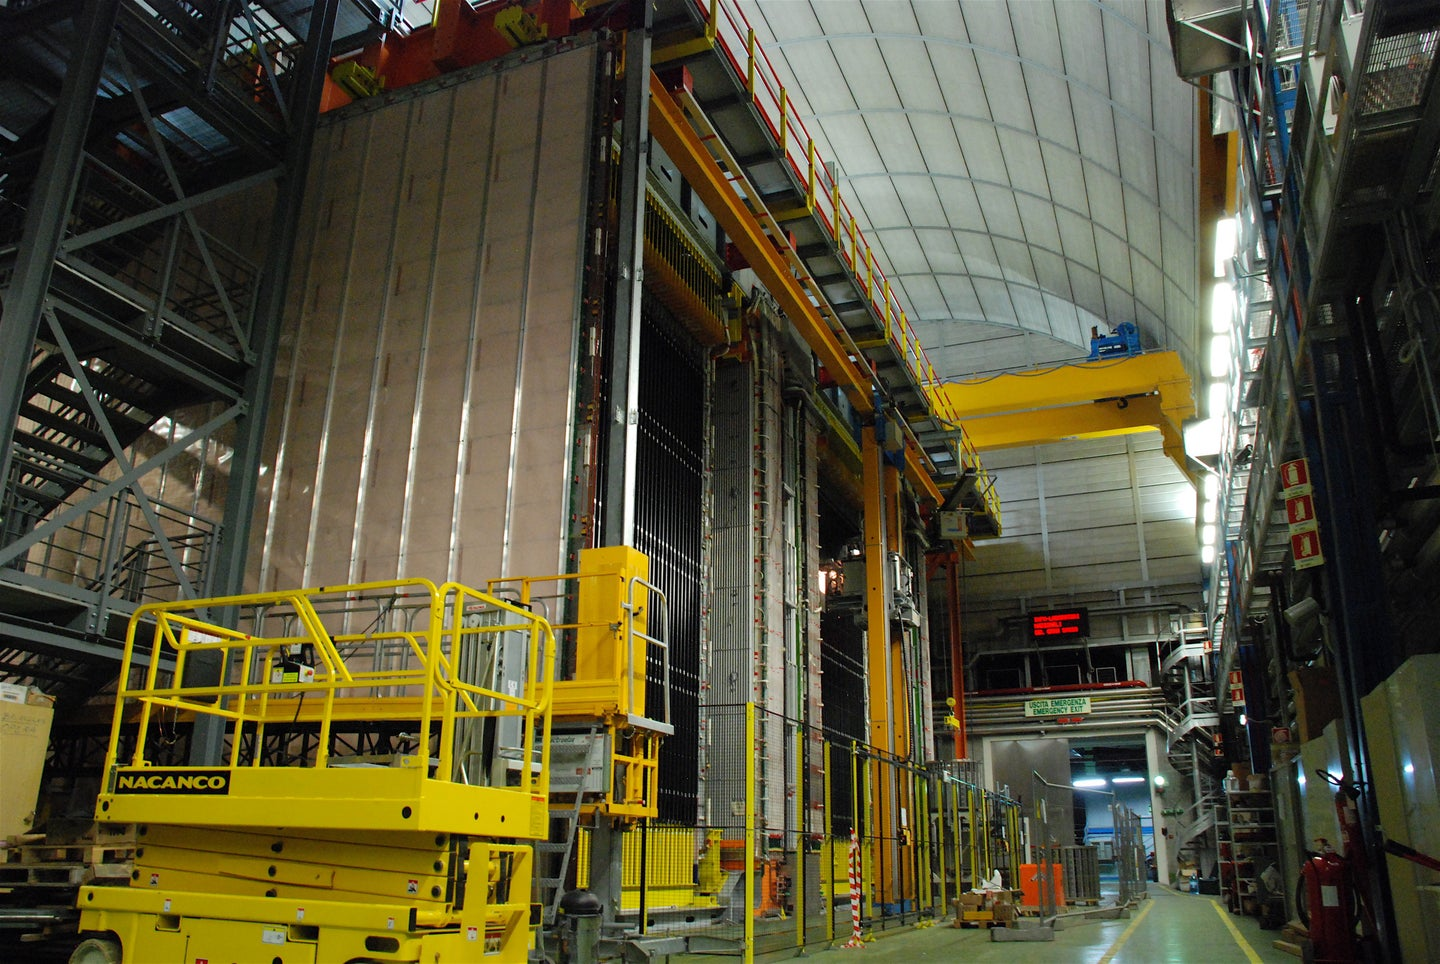 European Physicists Will Race Neutrinos Again, Trying to Reproduce Faster-Than-Light Results